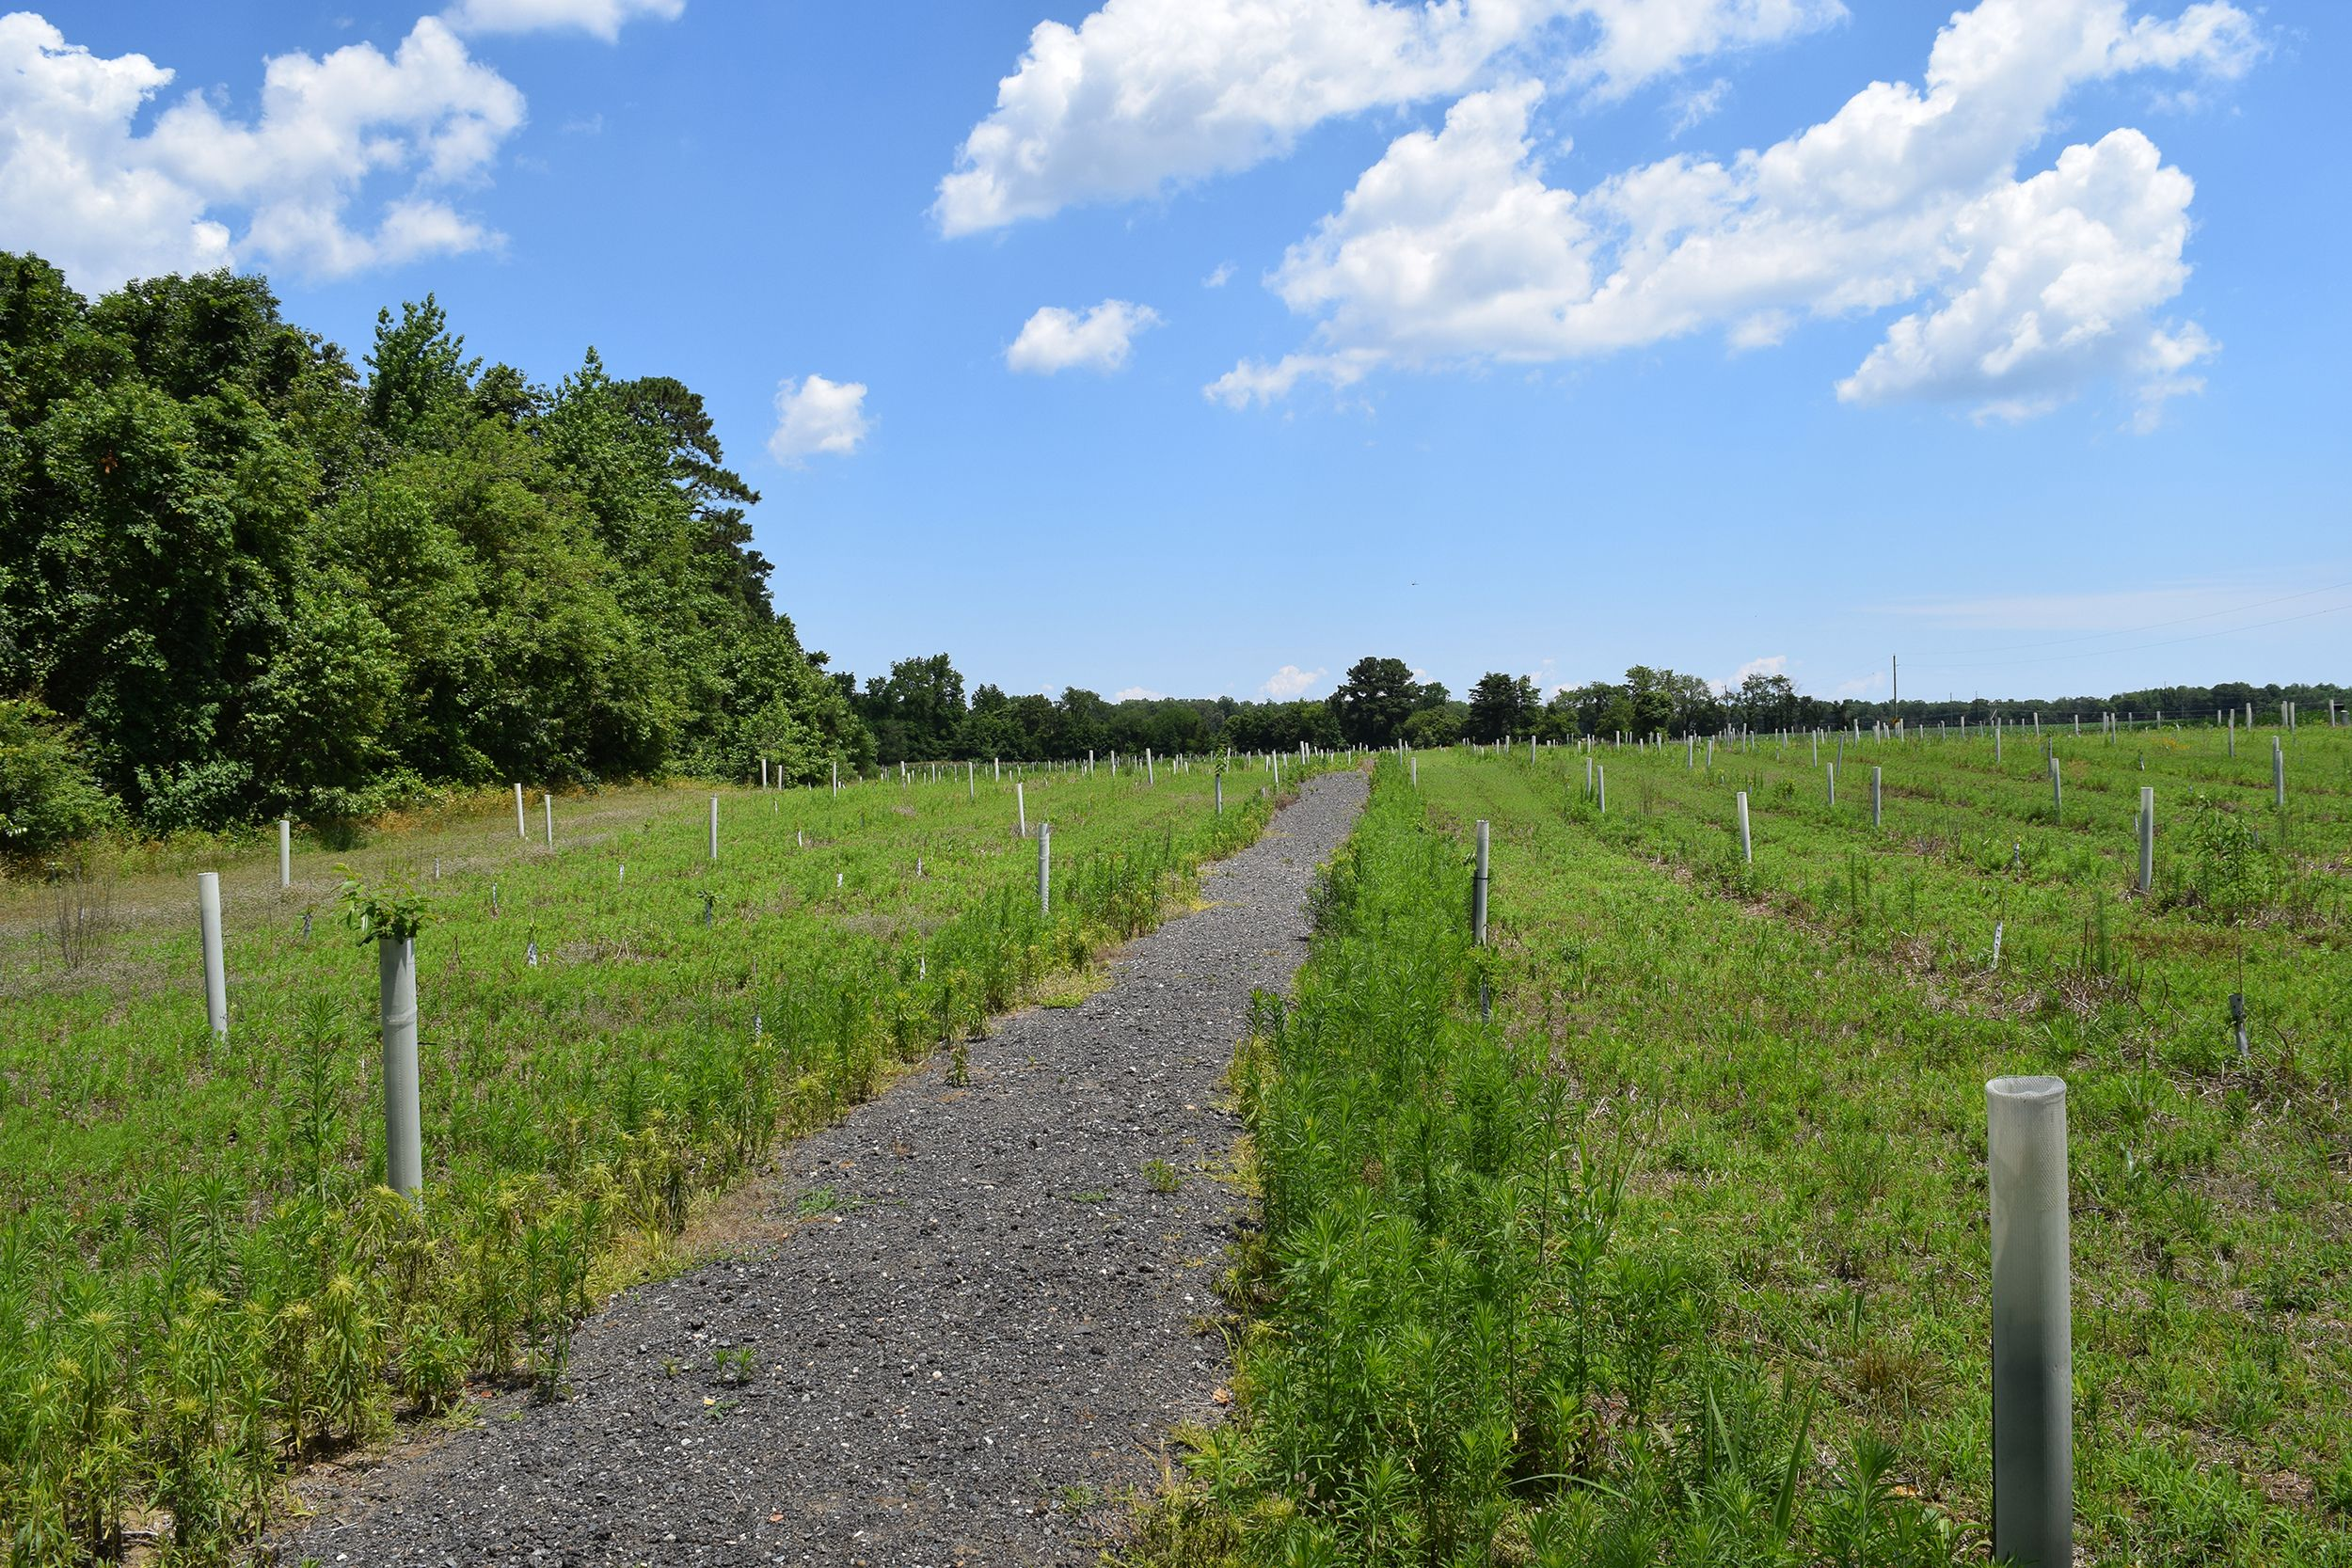 A wide gravel path cuts through an open meadow. Tall white plastic tree tubes are evenly spaced across the meadow protecting young oak saplings. A mature forest grows at the edge of the meadow.